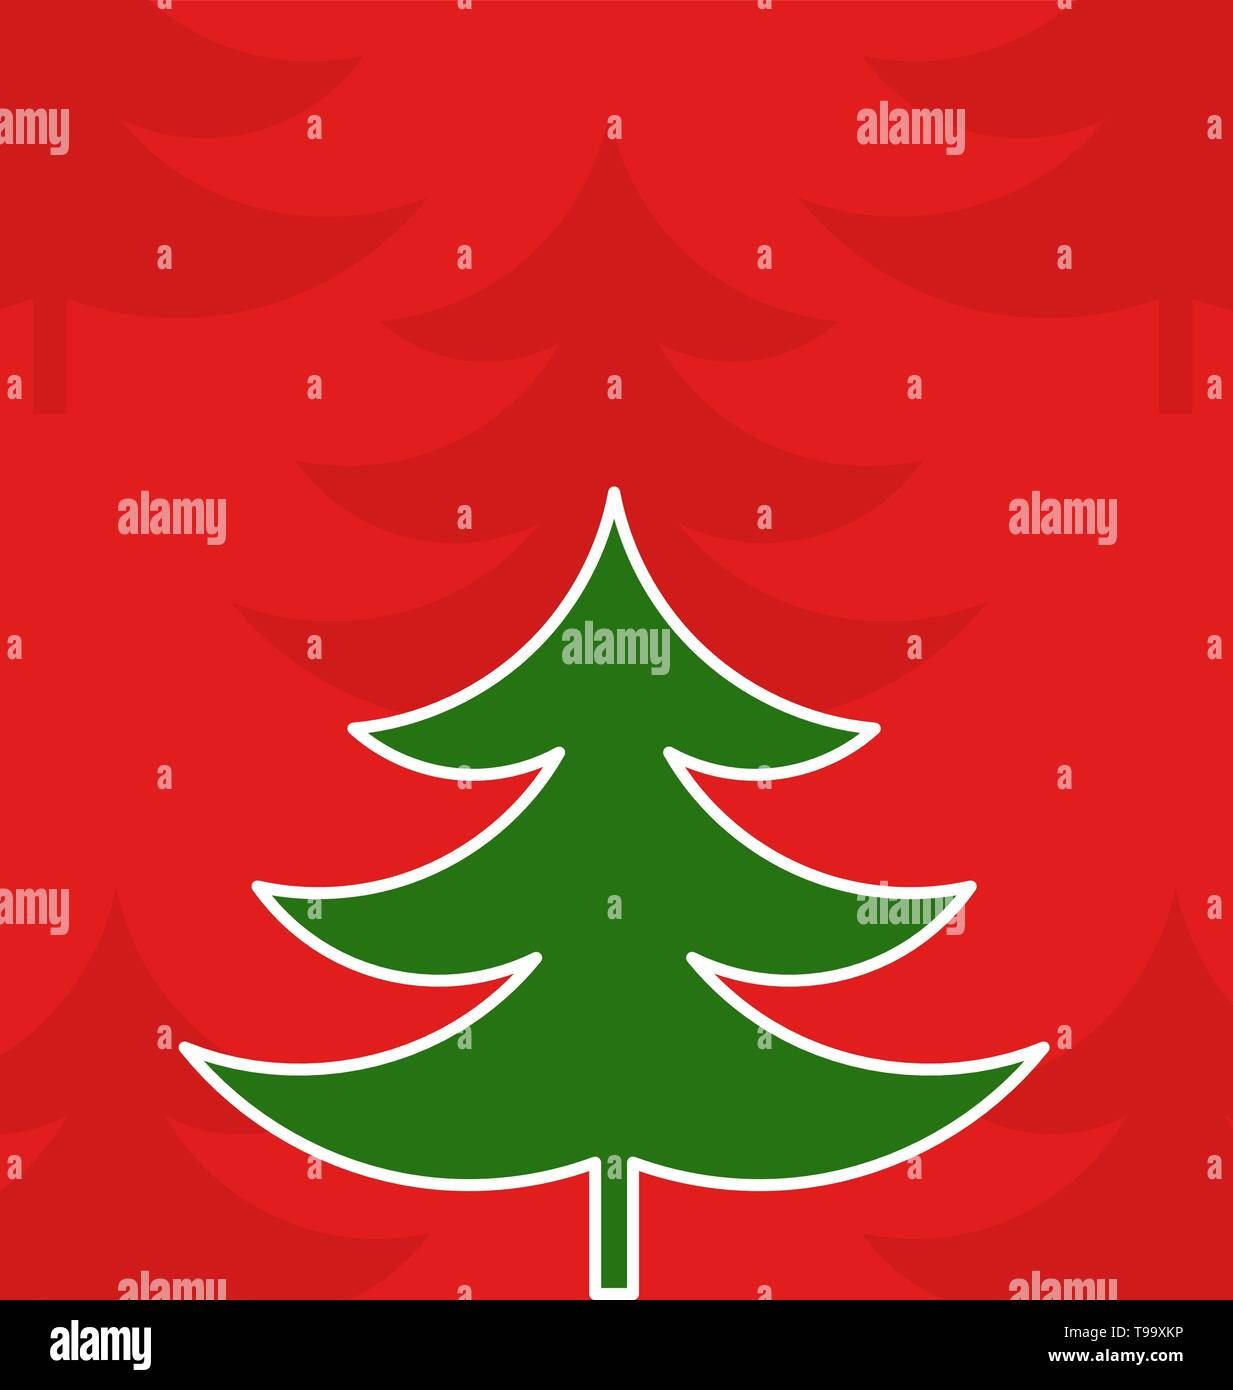 Christmas tree on red background illustration - Stock Image